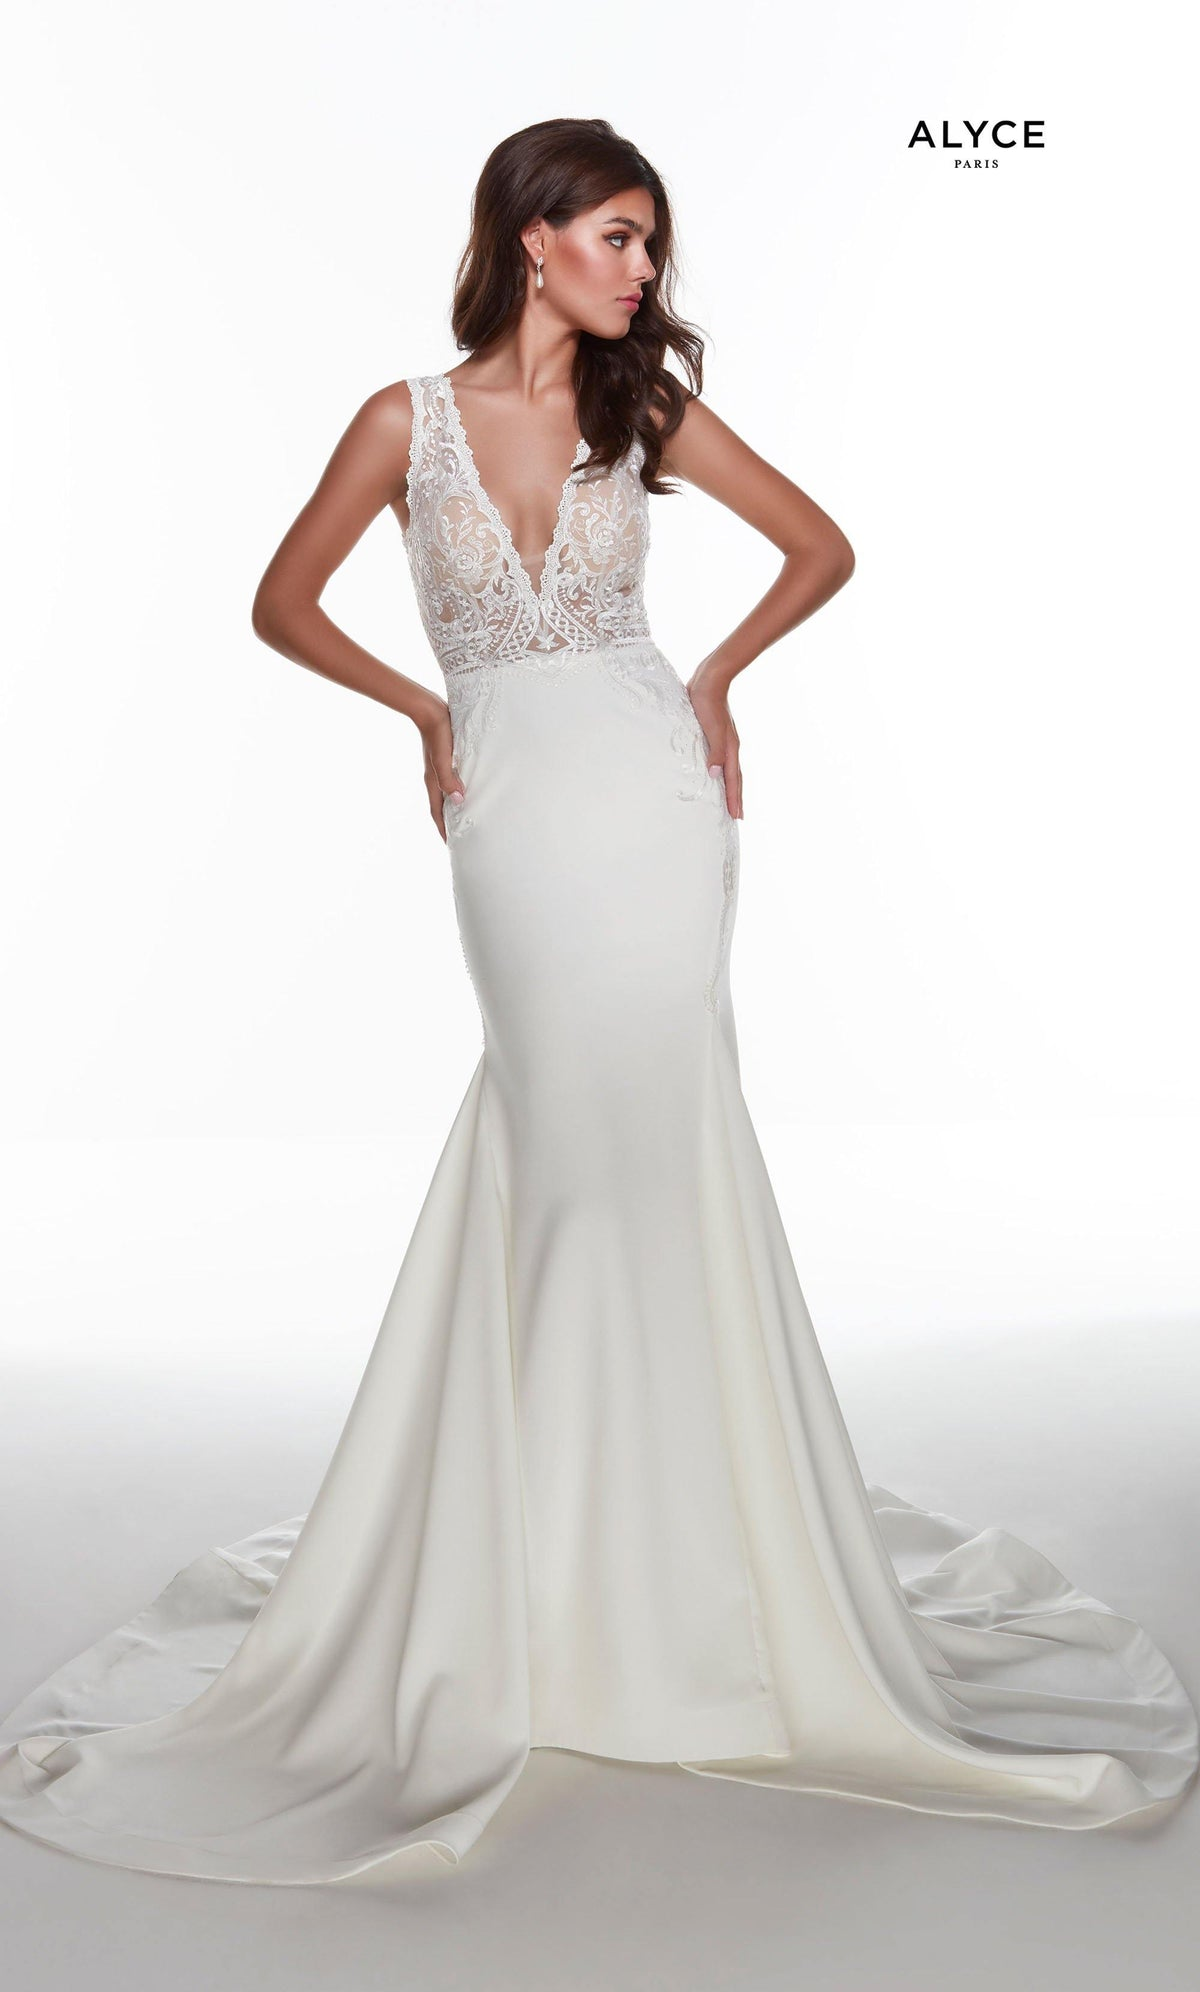 Ivory fit and flare informal bridal gown with a sheer lace bodice and plunging neckline